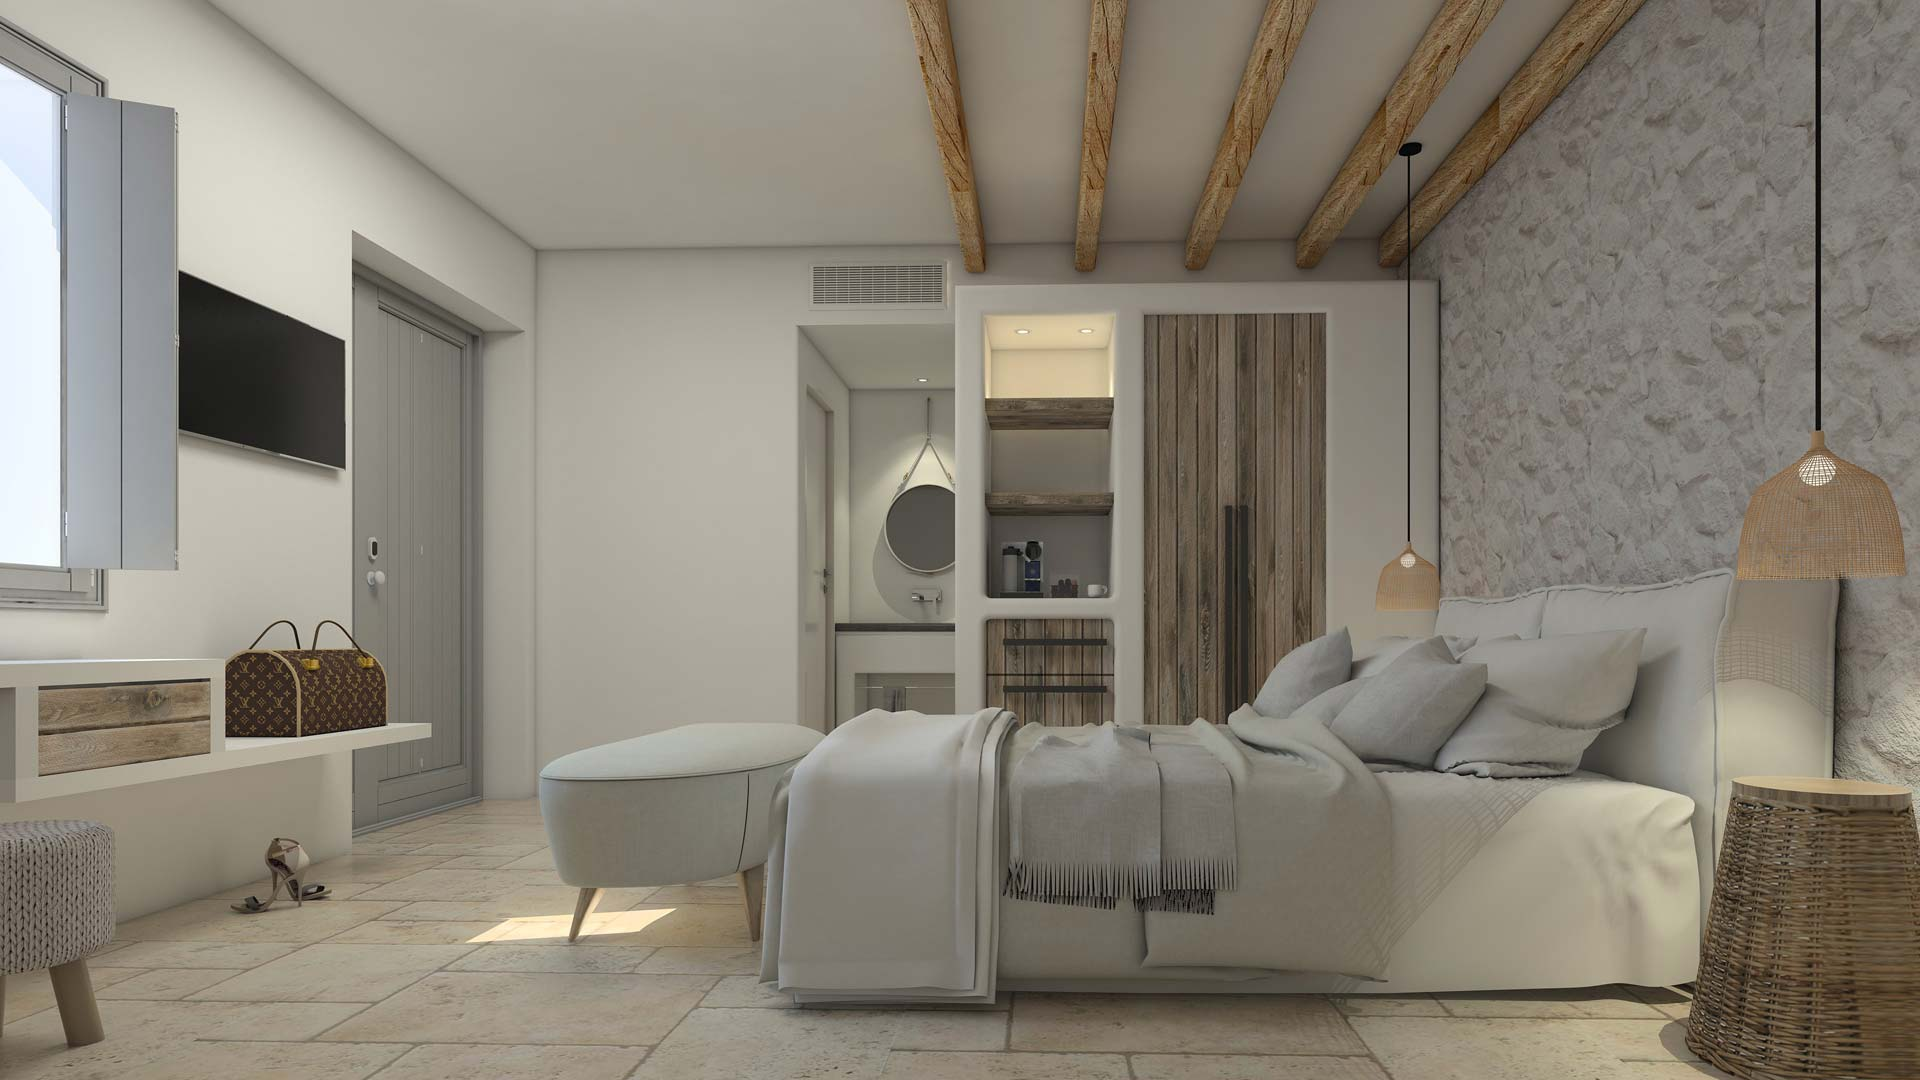 Mykonos Bliss - Cozy Suites, Boutique Hotel, Kalo Livadi